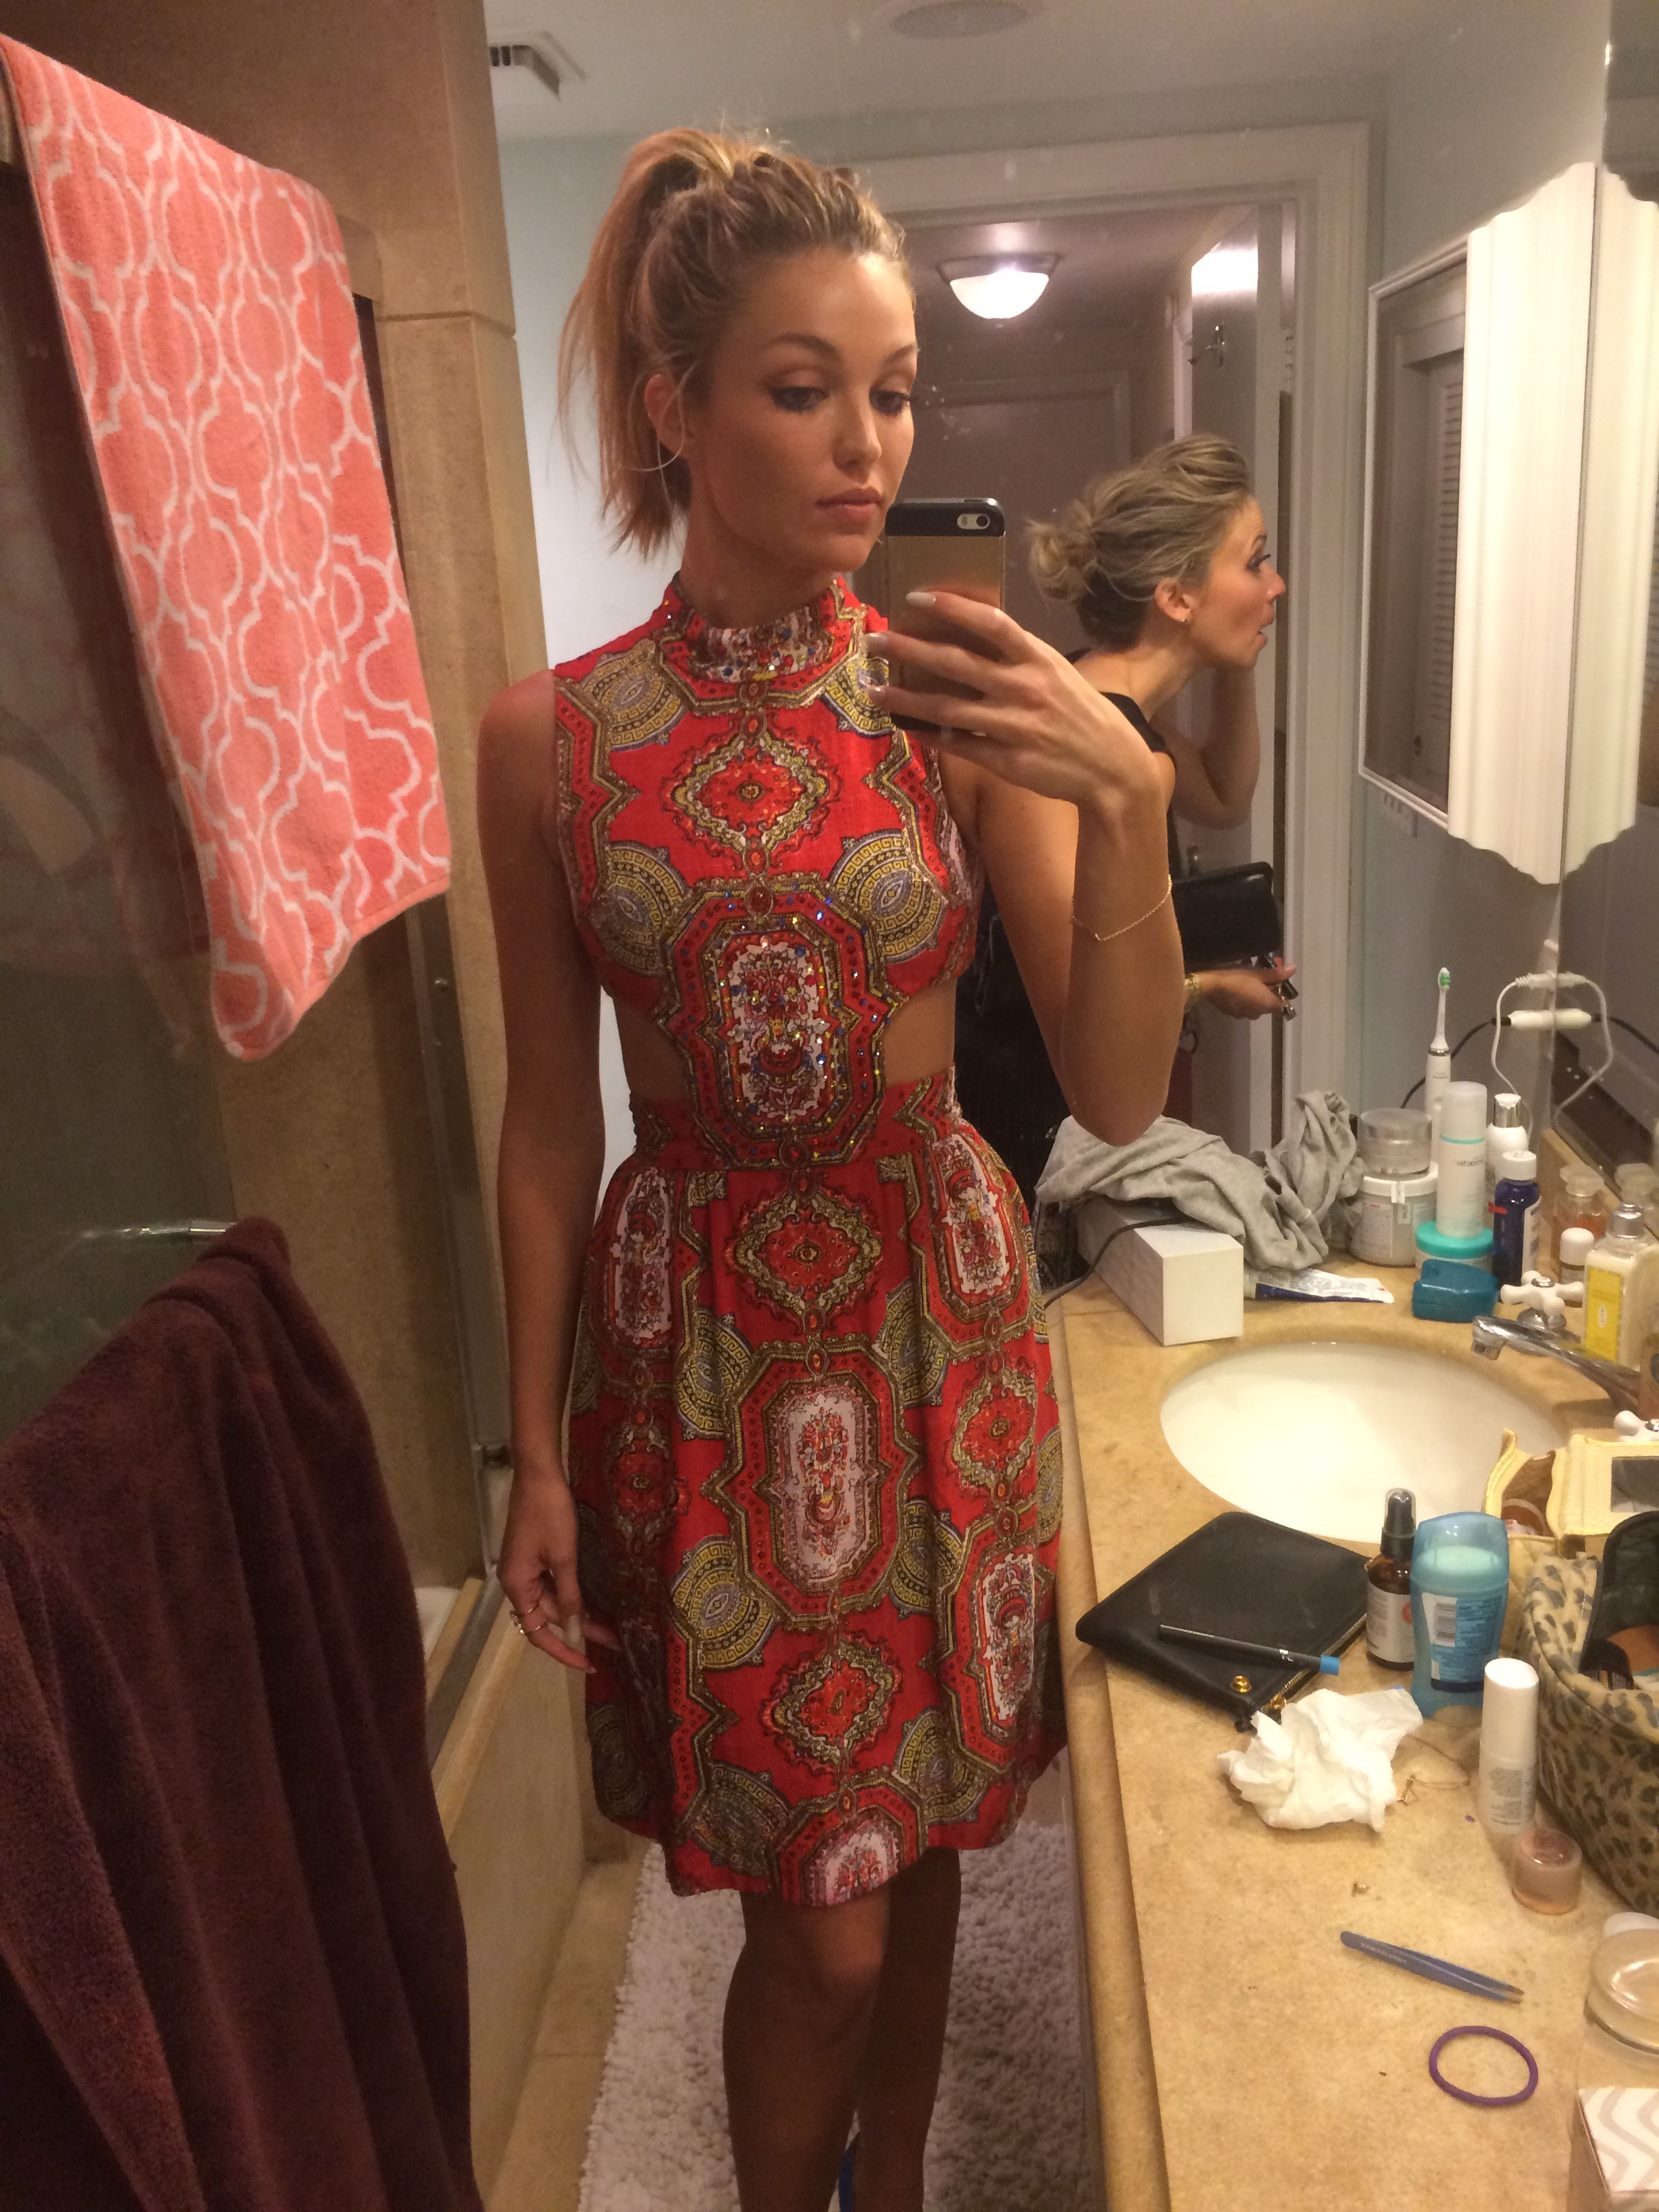 TheFappeningBlog.com - Lili Simmons Nude Leaked Fappening 30.jpg